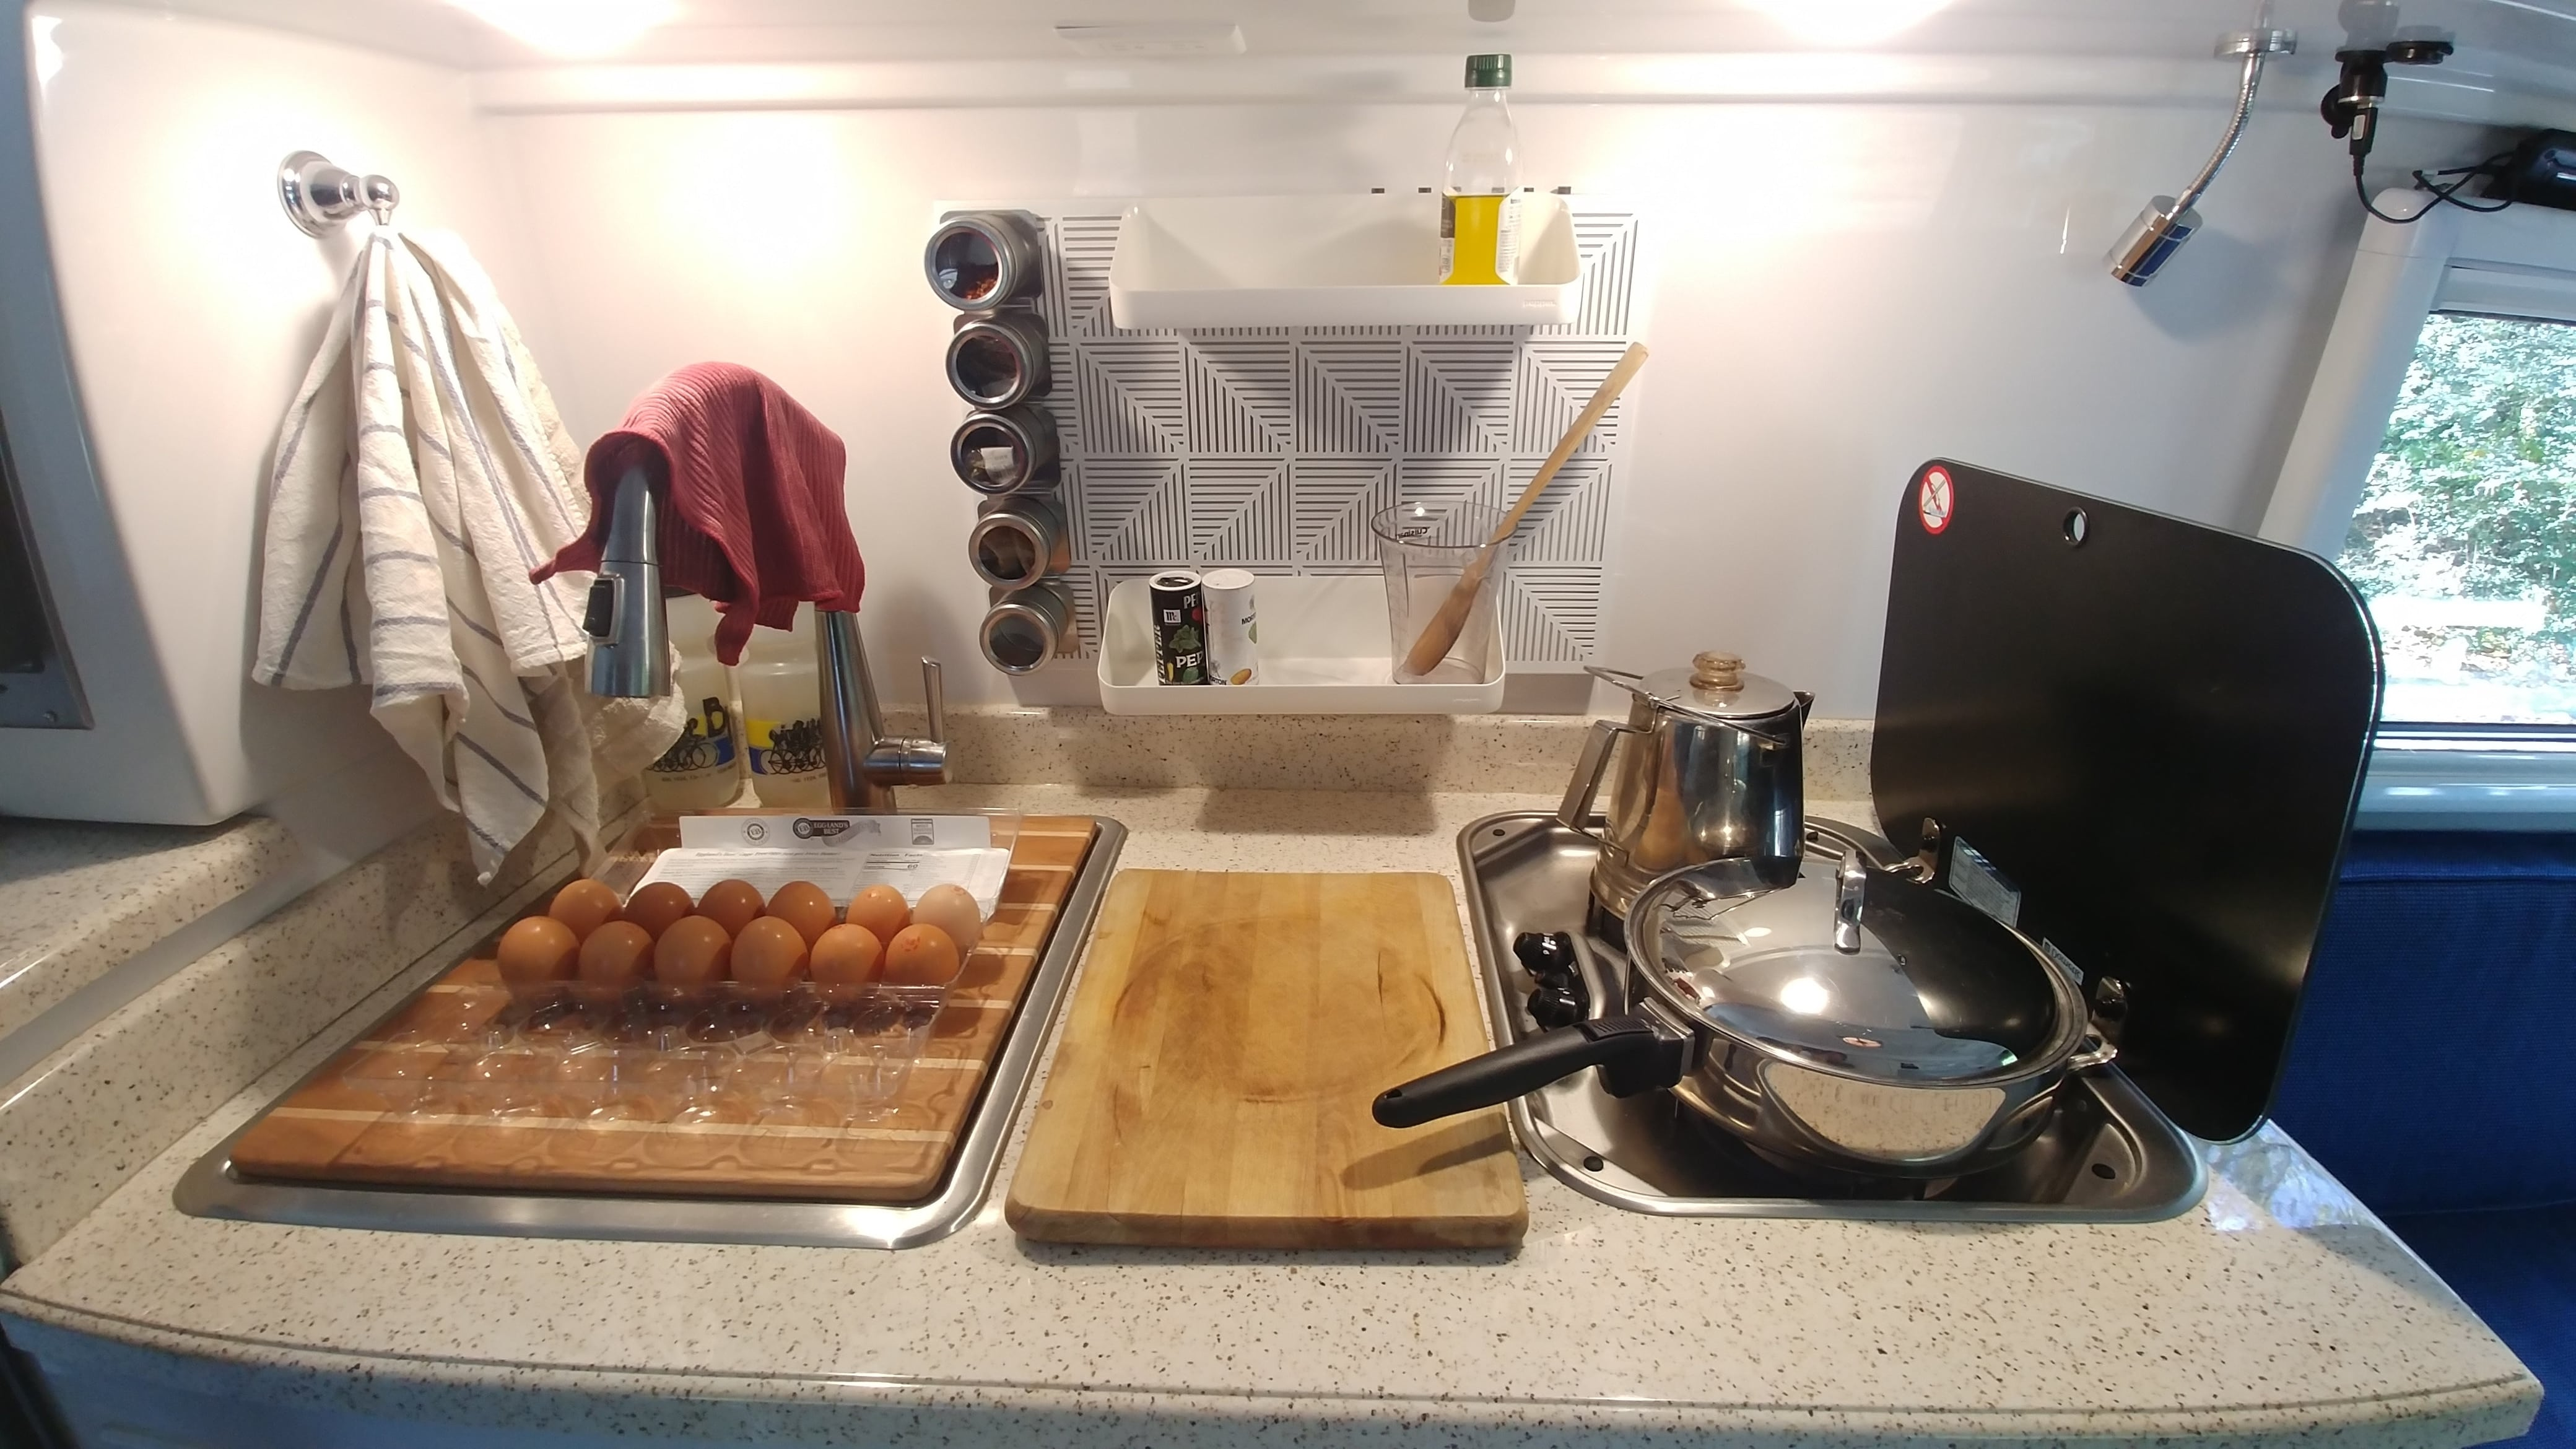 This is a magnet board mounted with heavy duty Velcro. The shelves really help extend the counter space when cooking. Also the sink cover/cutting board Foy Sperring makes are so worth the money!